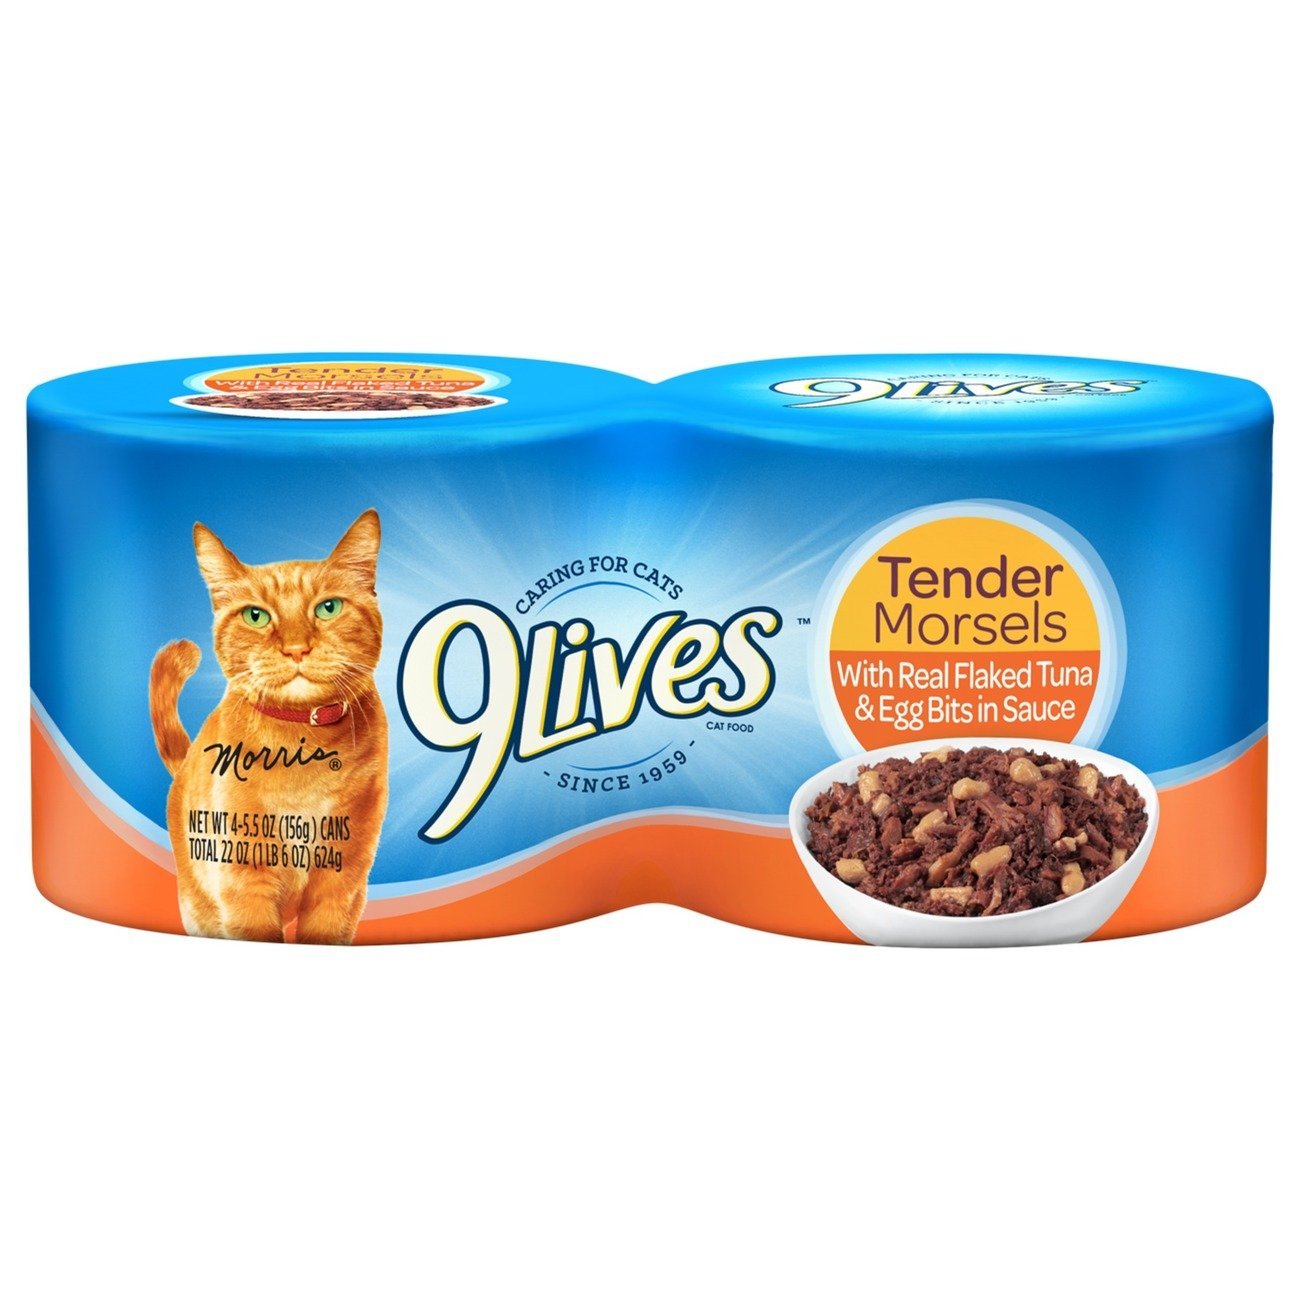 9Lives Tender Morsels With Real Ocean Whitefish & Tuna In Sauce Wet Cat Food